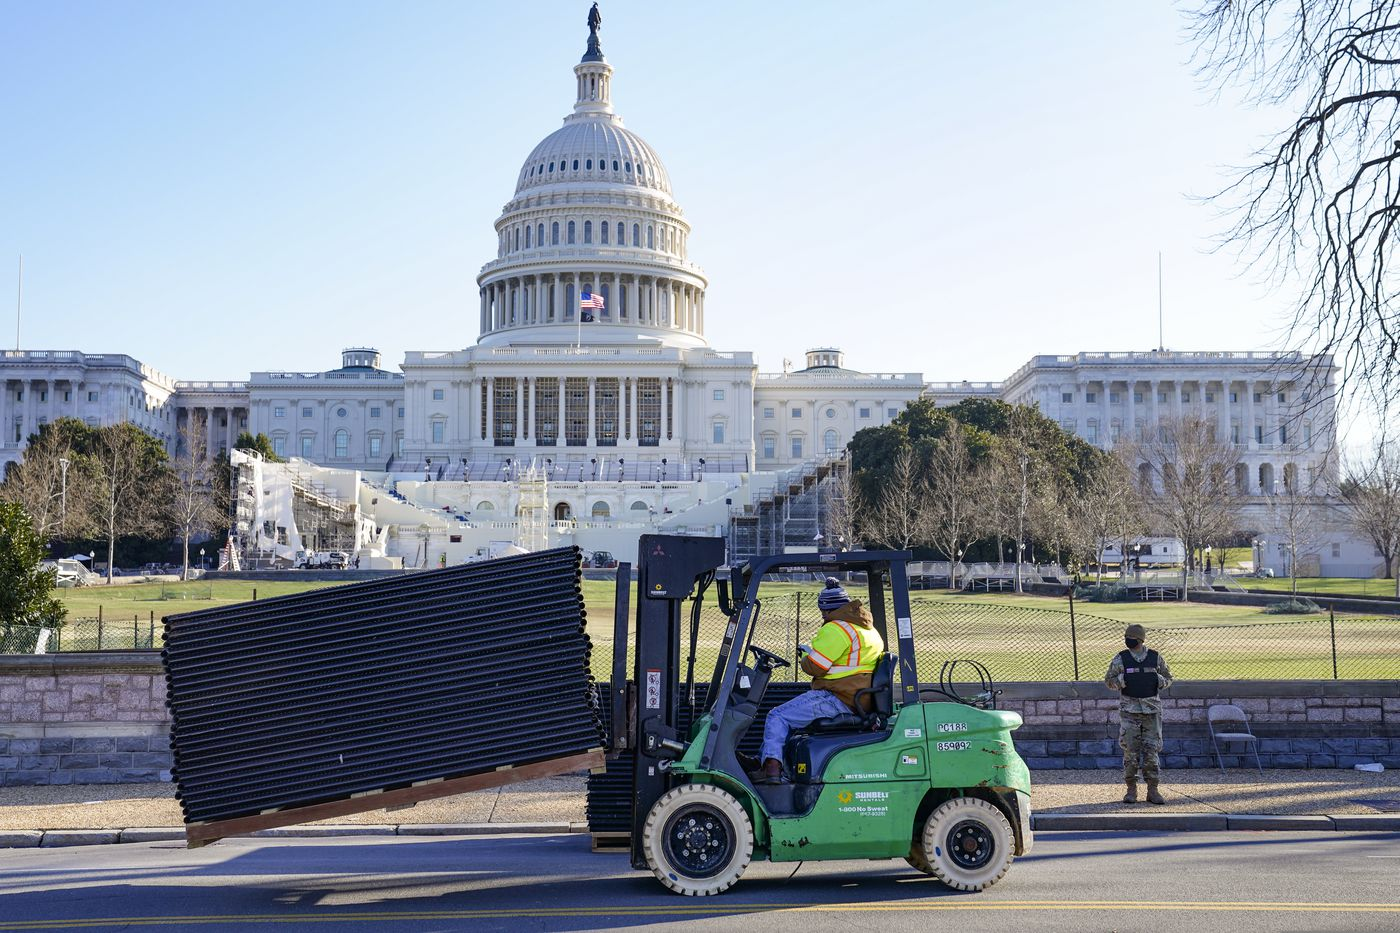 DC National Guard stands outside a mostly quiet Capitol, Thursday morning, Jan. 7, 2021 in Washington, as workers place security fencing in place. (AP Photo/John Minchillo)